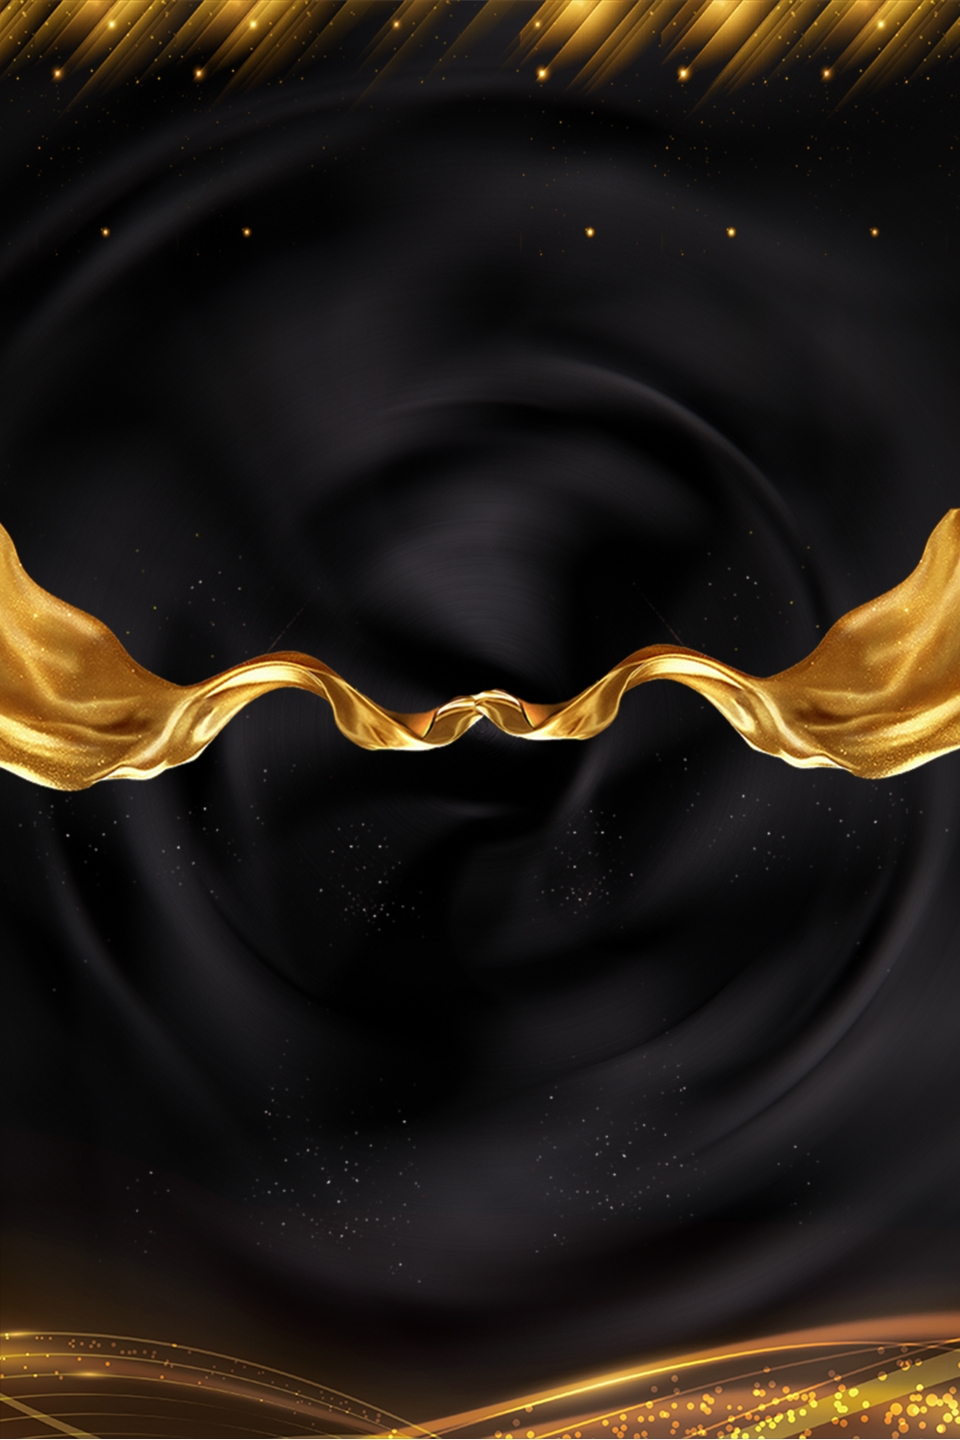 https pngtree com freebackground black gold atmosphere grand opening background material 1038082 html